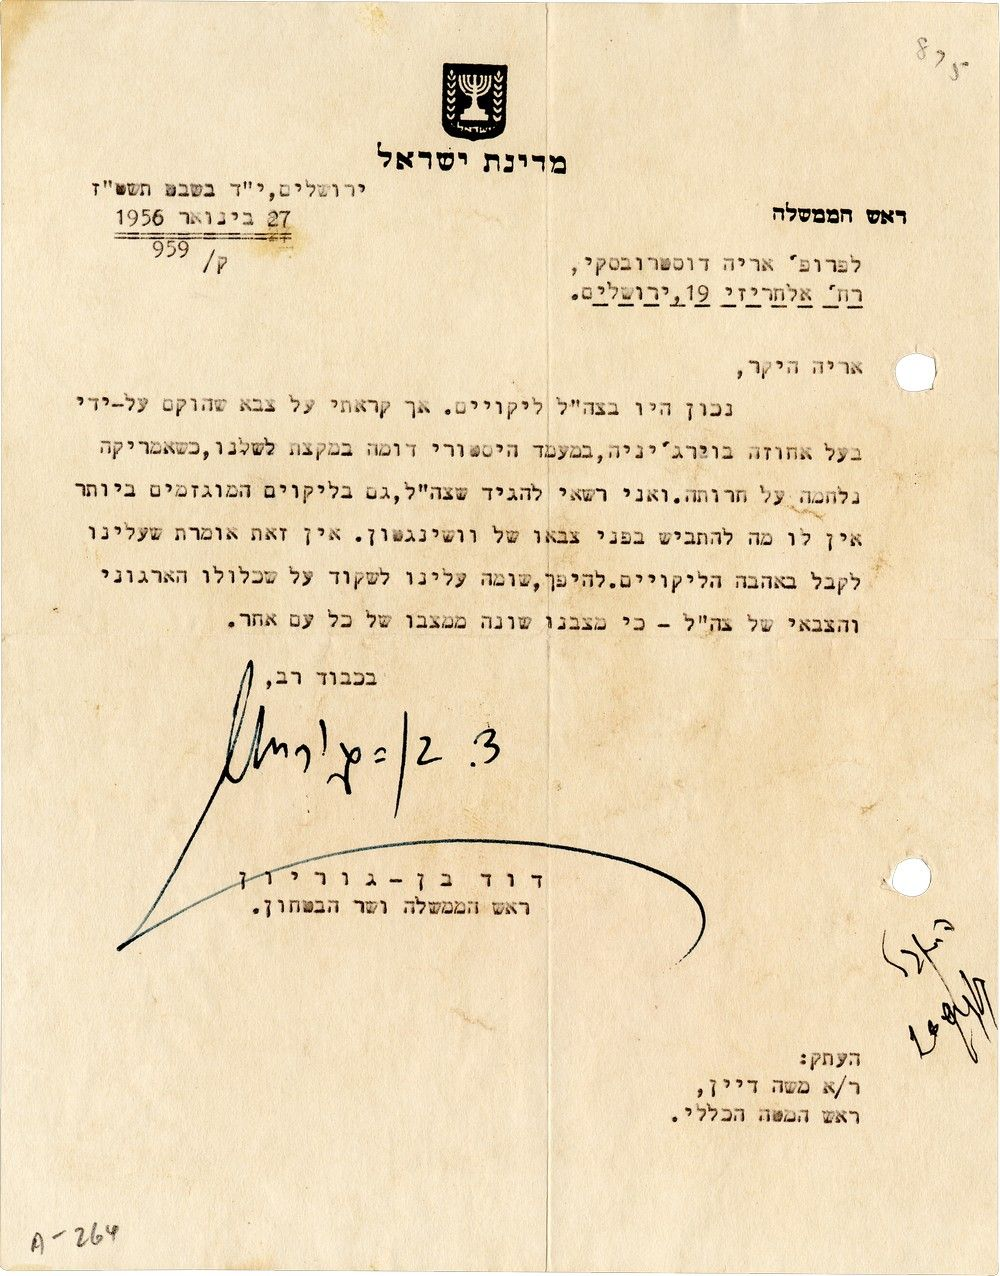 David Ben-Gurion Compares, Favorably, the Fledgling IDF to George Washington's Revolutionary Army